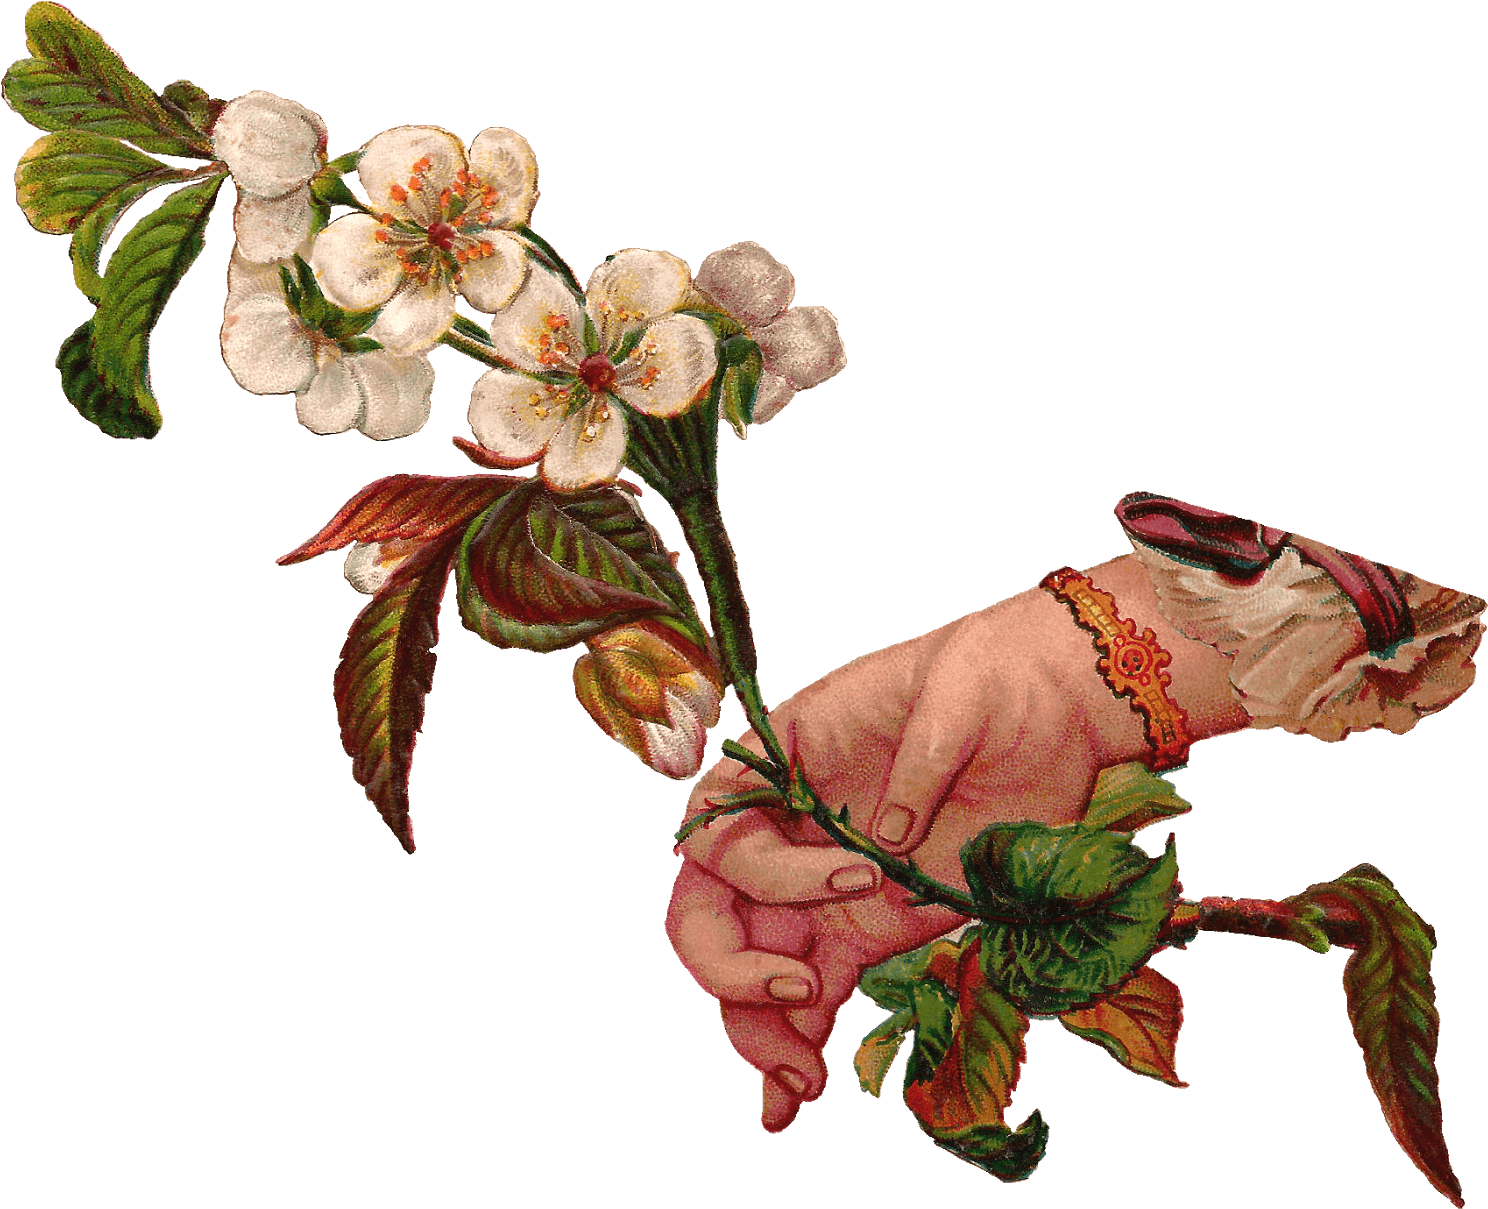 Download Hand Giving Flowers Vintage Plant Illustrations Transparent Png Image With No Background Pngkey Com